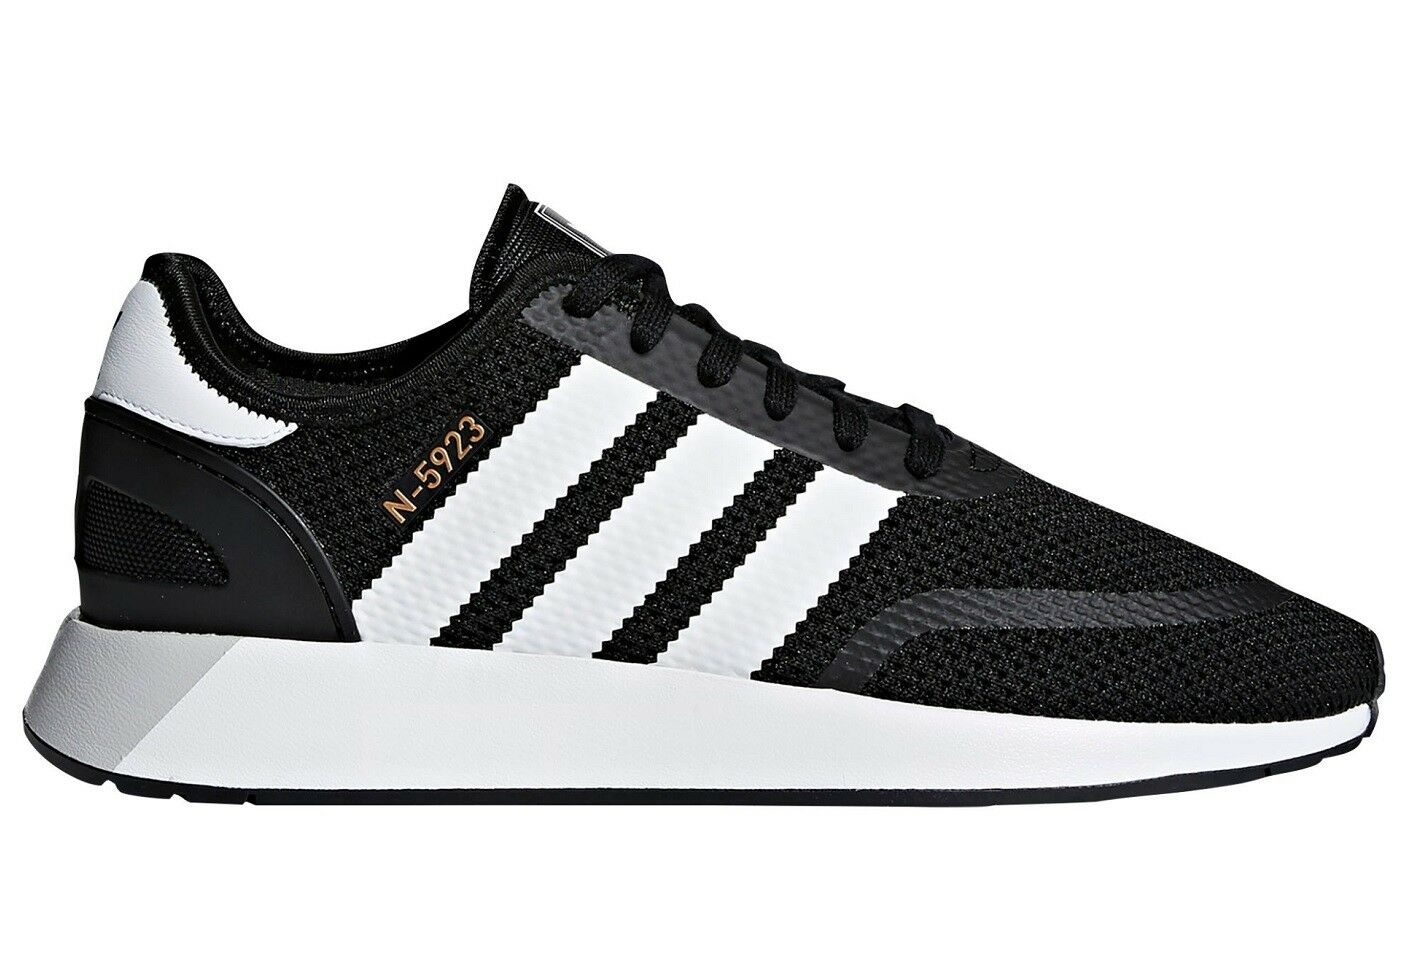 Adidas N-5923 Mens CQ2337 Black White Grey One Textile Running Shoes Size 5.5